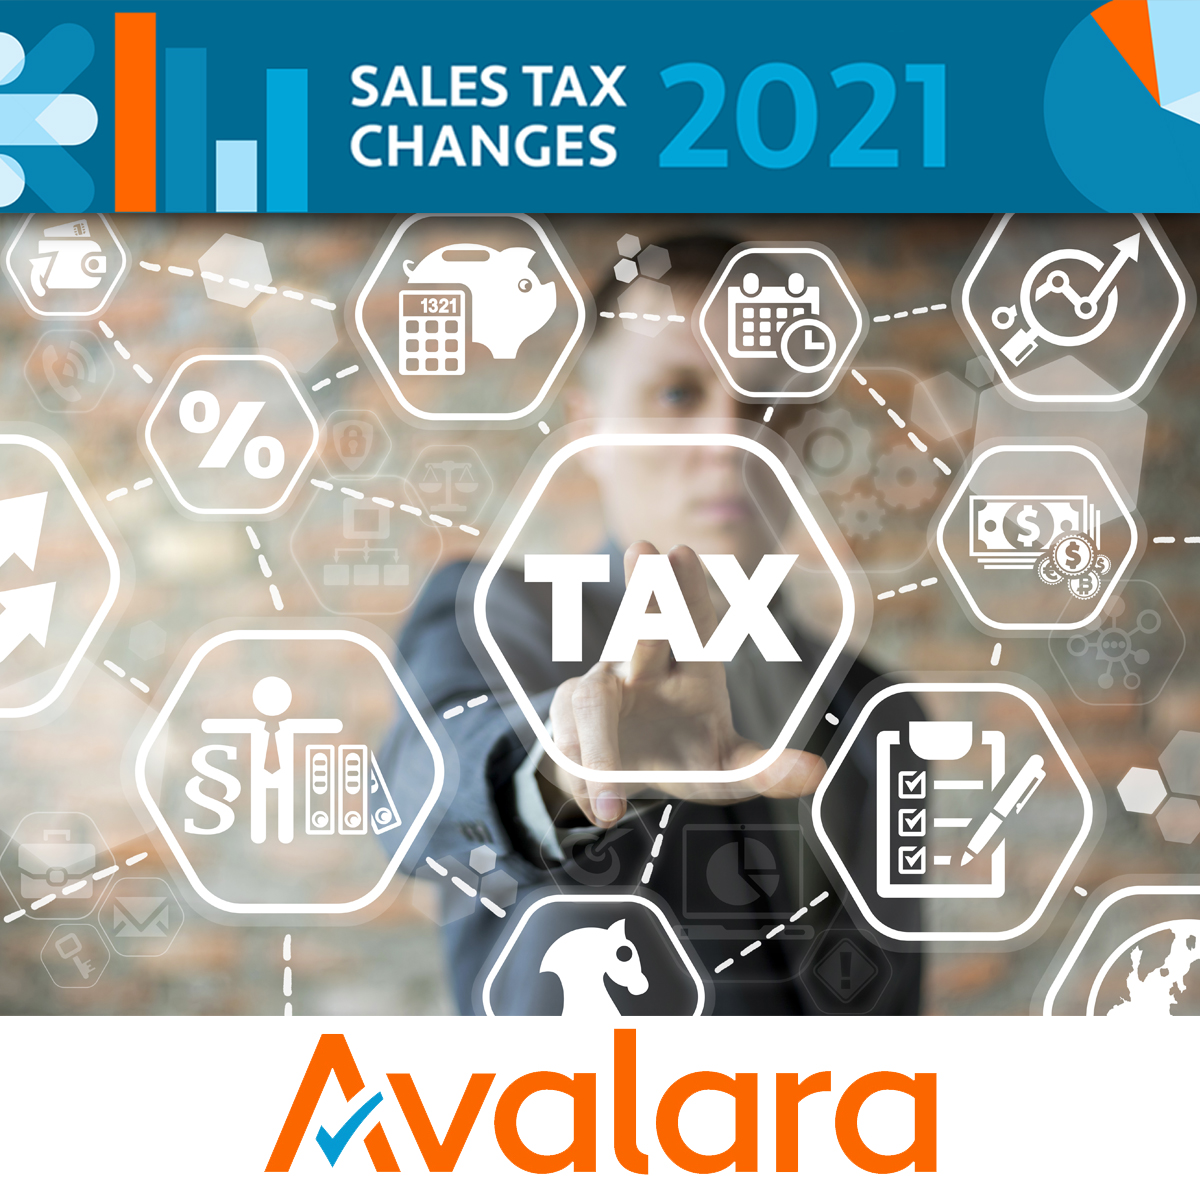 Sales Tax Laws You Need To Know